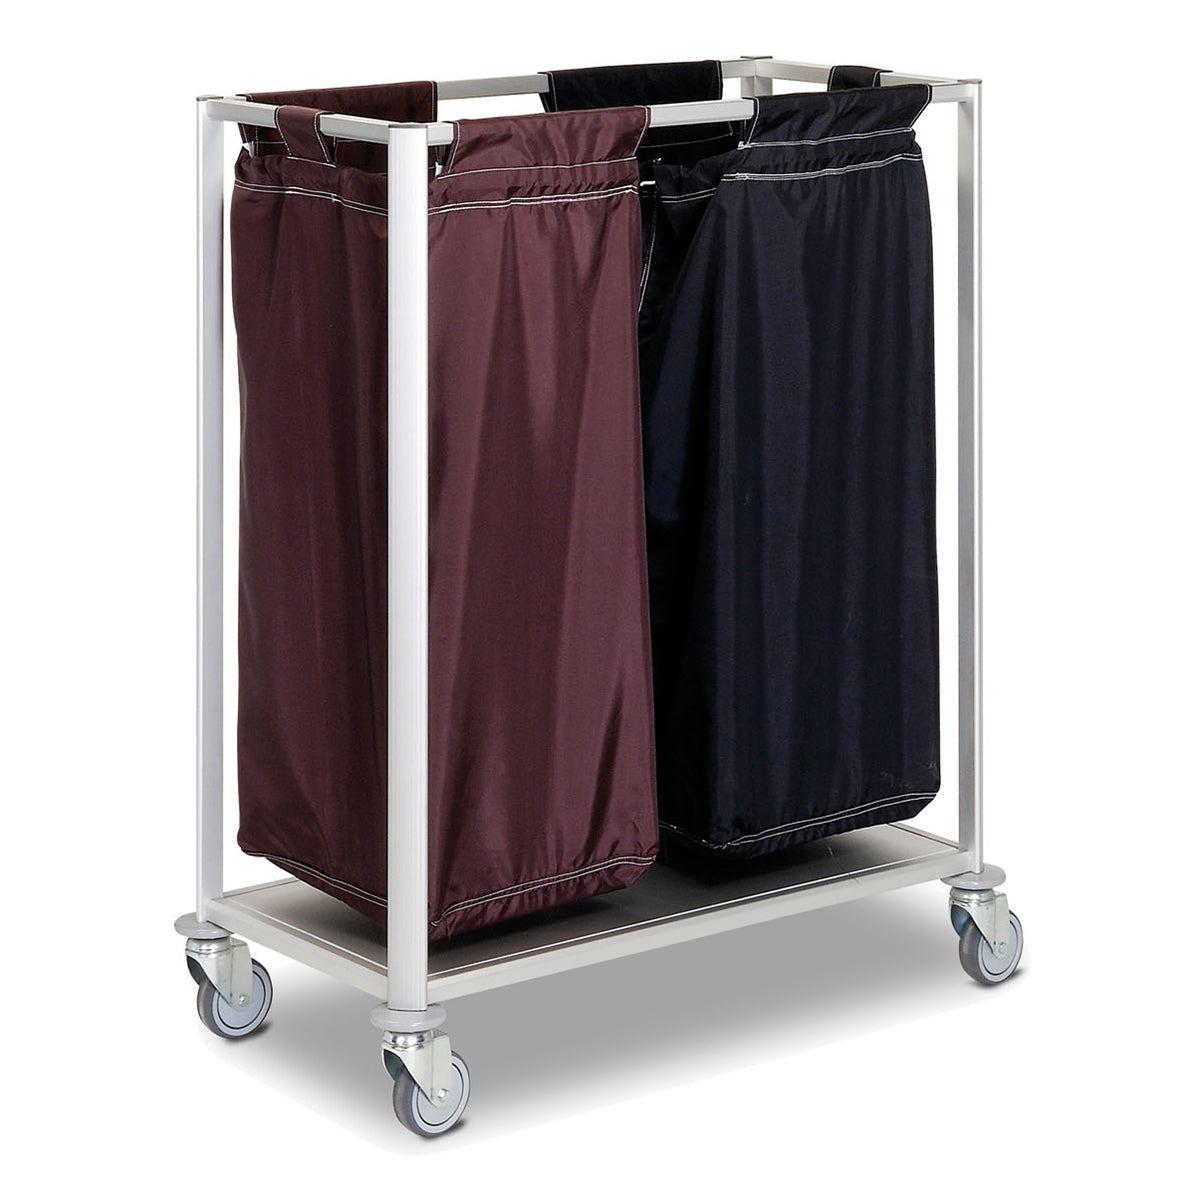 Callisto Duo Laundry & Cleaning Trolley